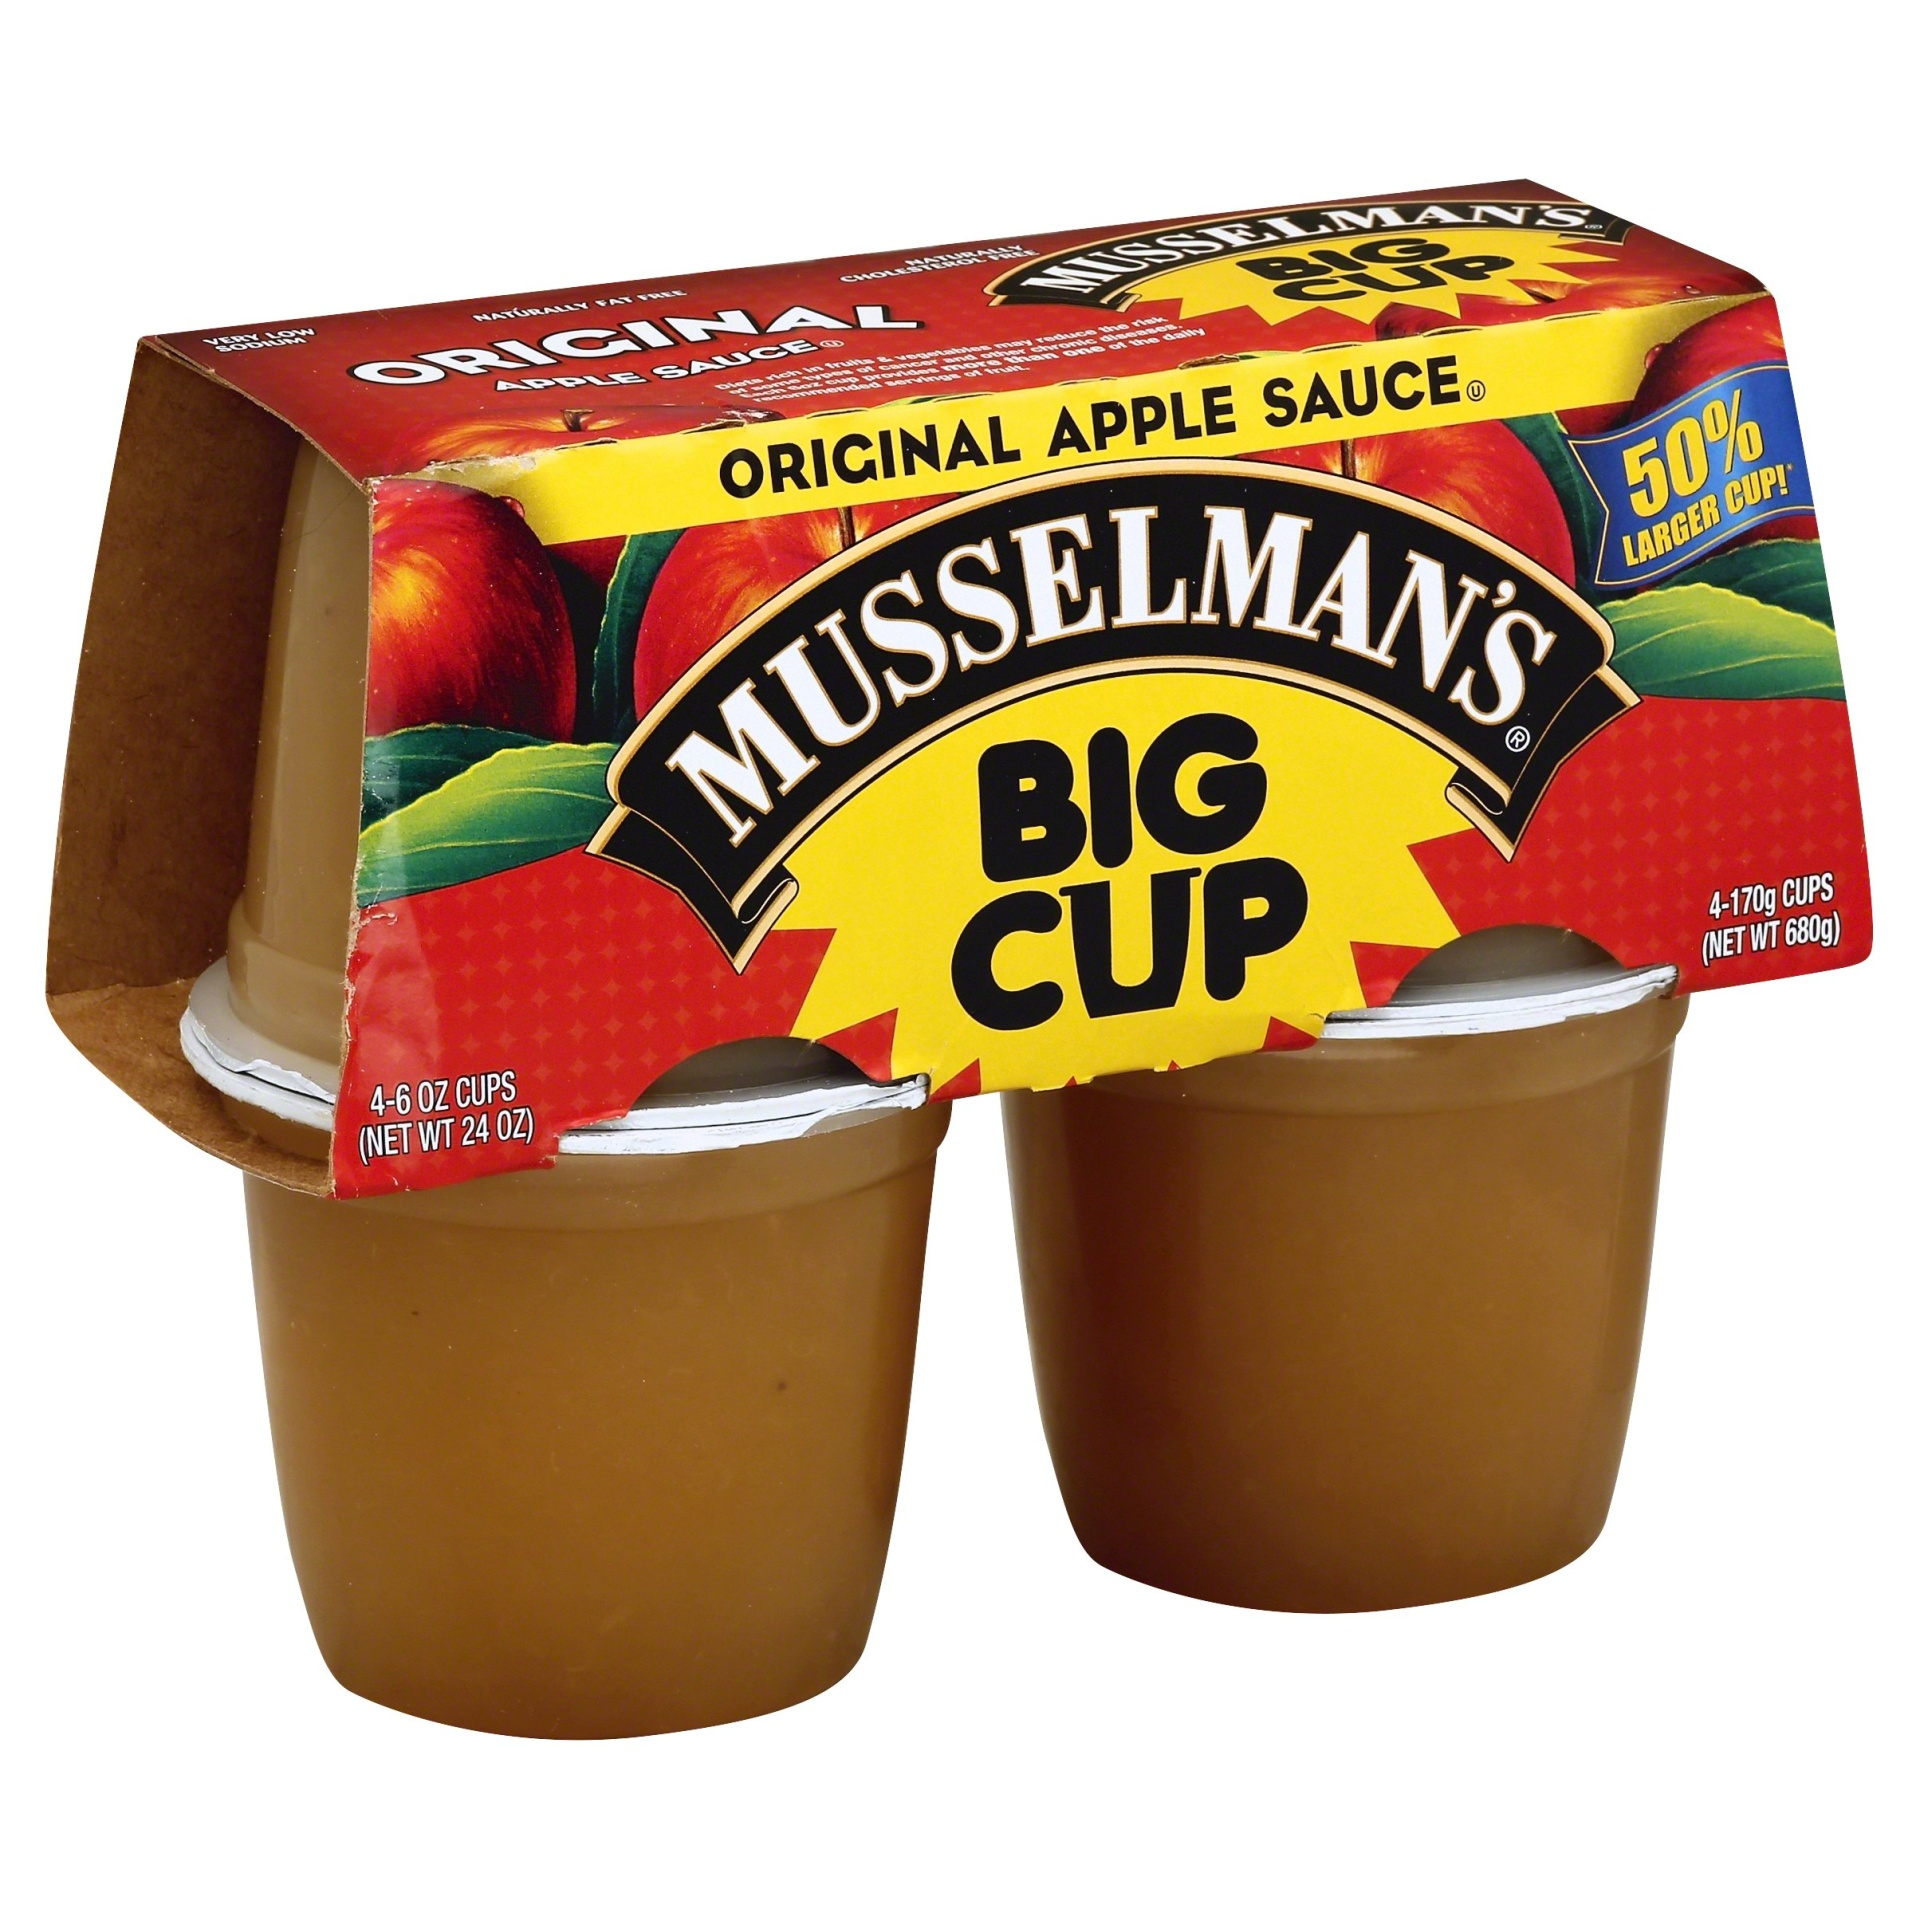 slide 1 of 8, Musselman's Big Cup Original Apple Sauce,